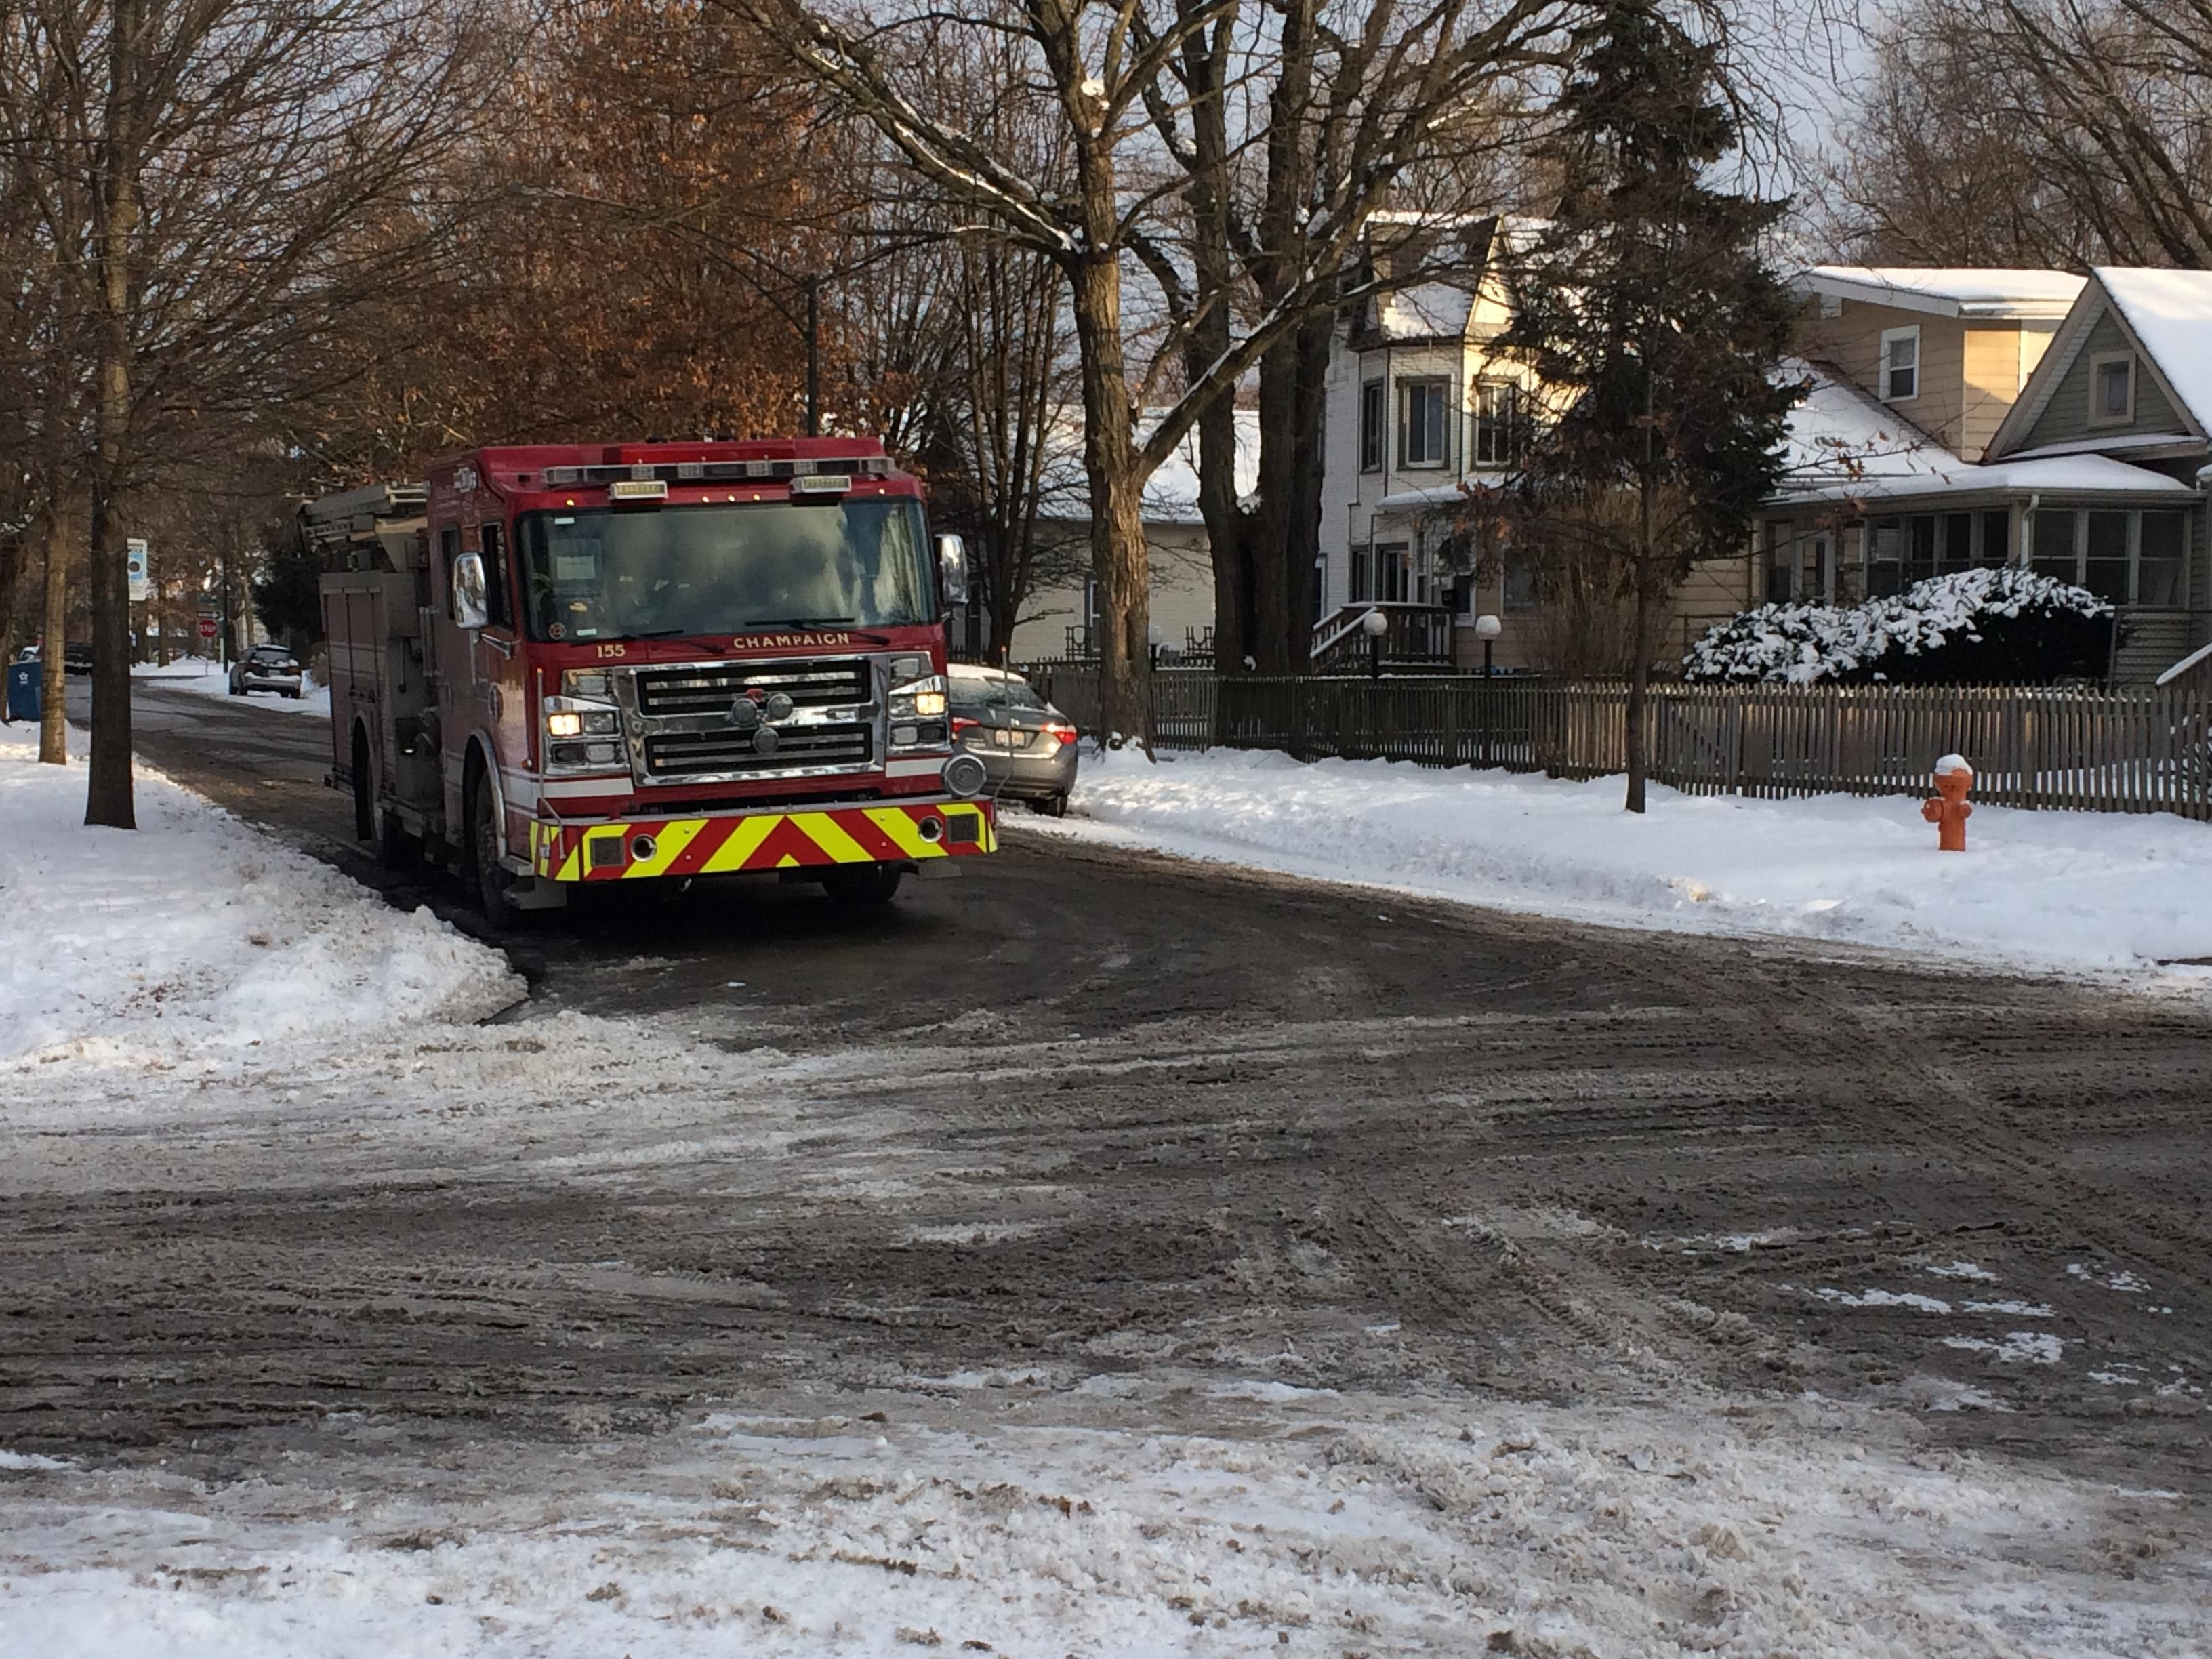 2 Champaign homes evacuated due to gas leak (Senait Gebregiorgis)